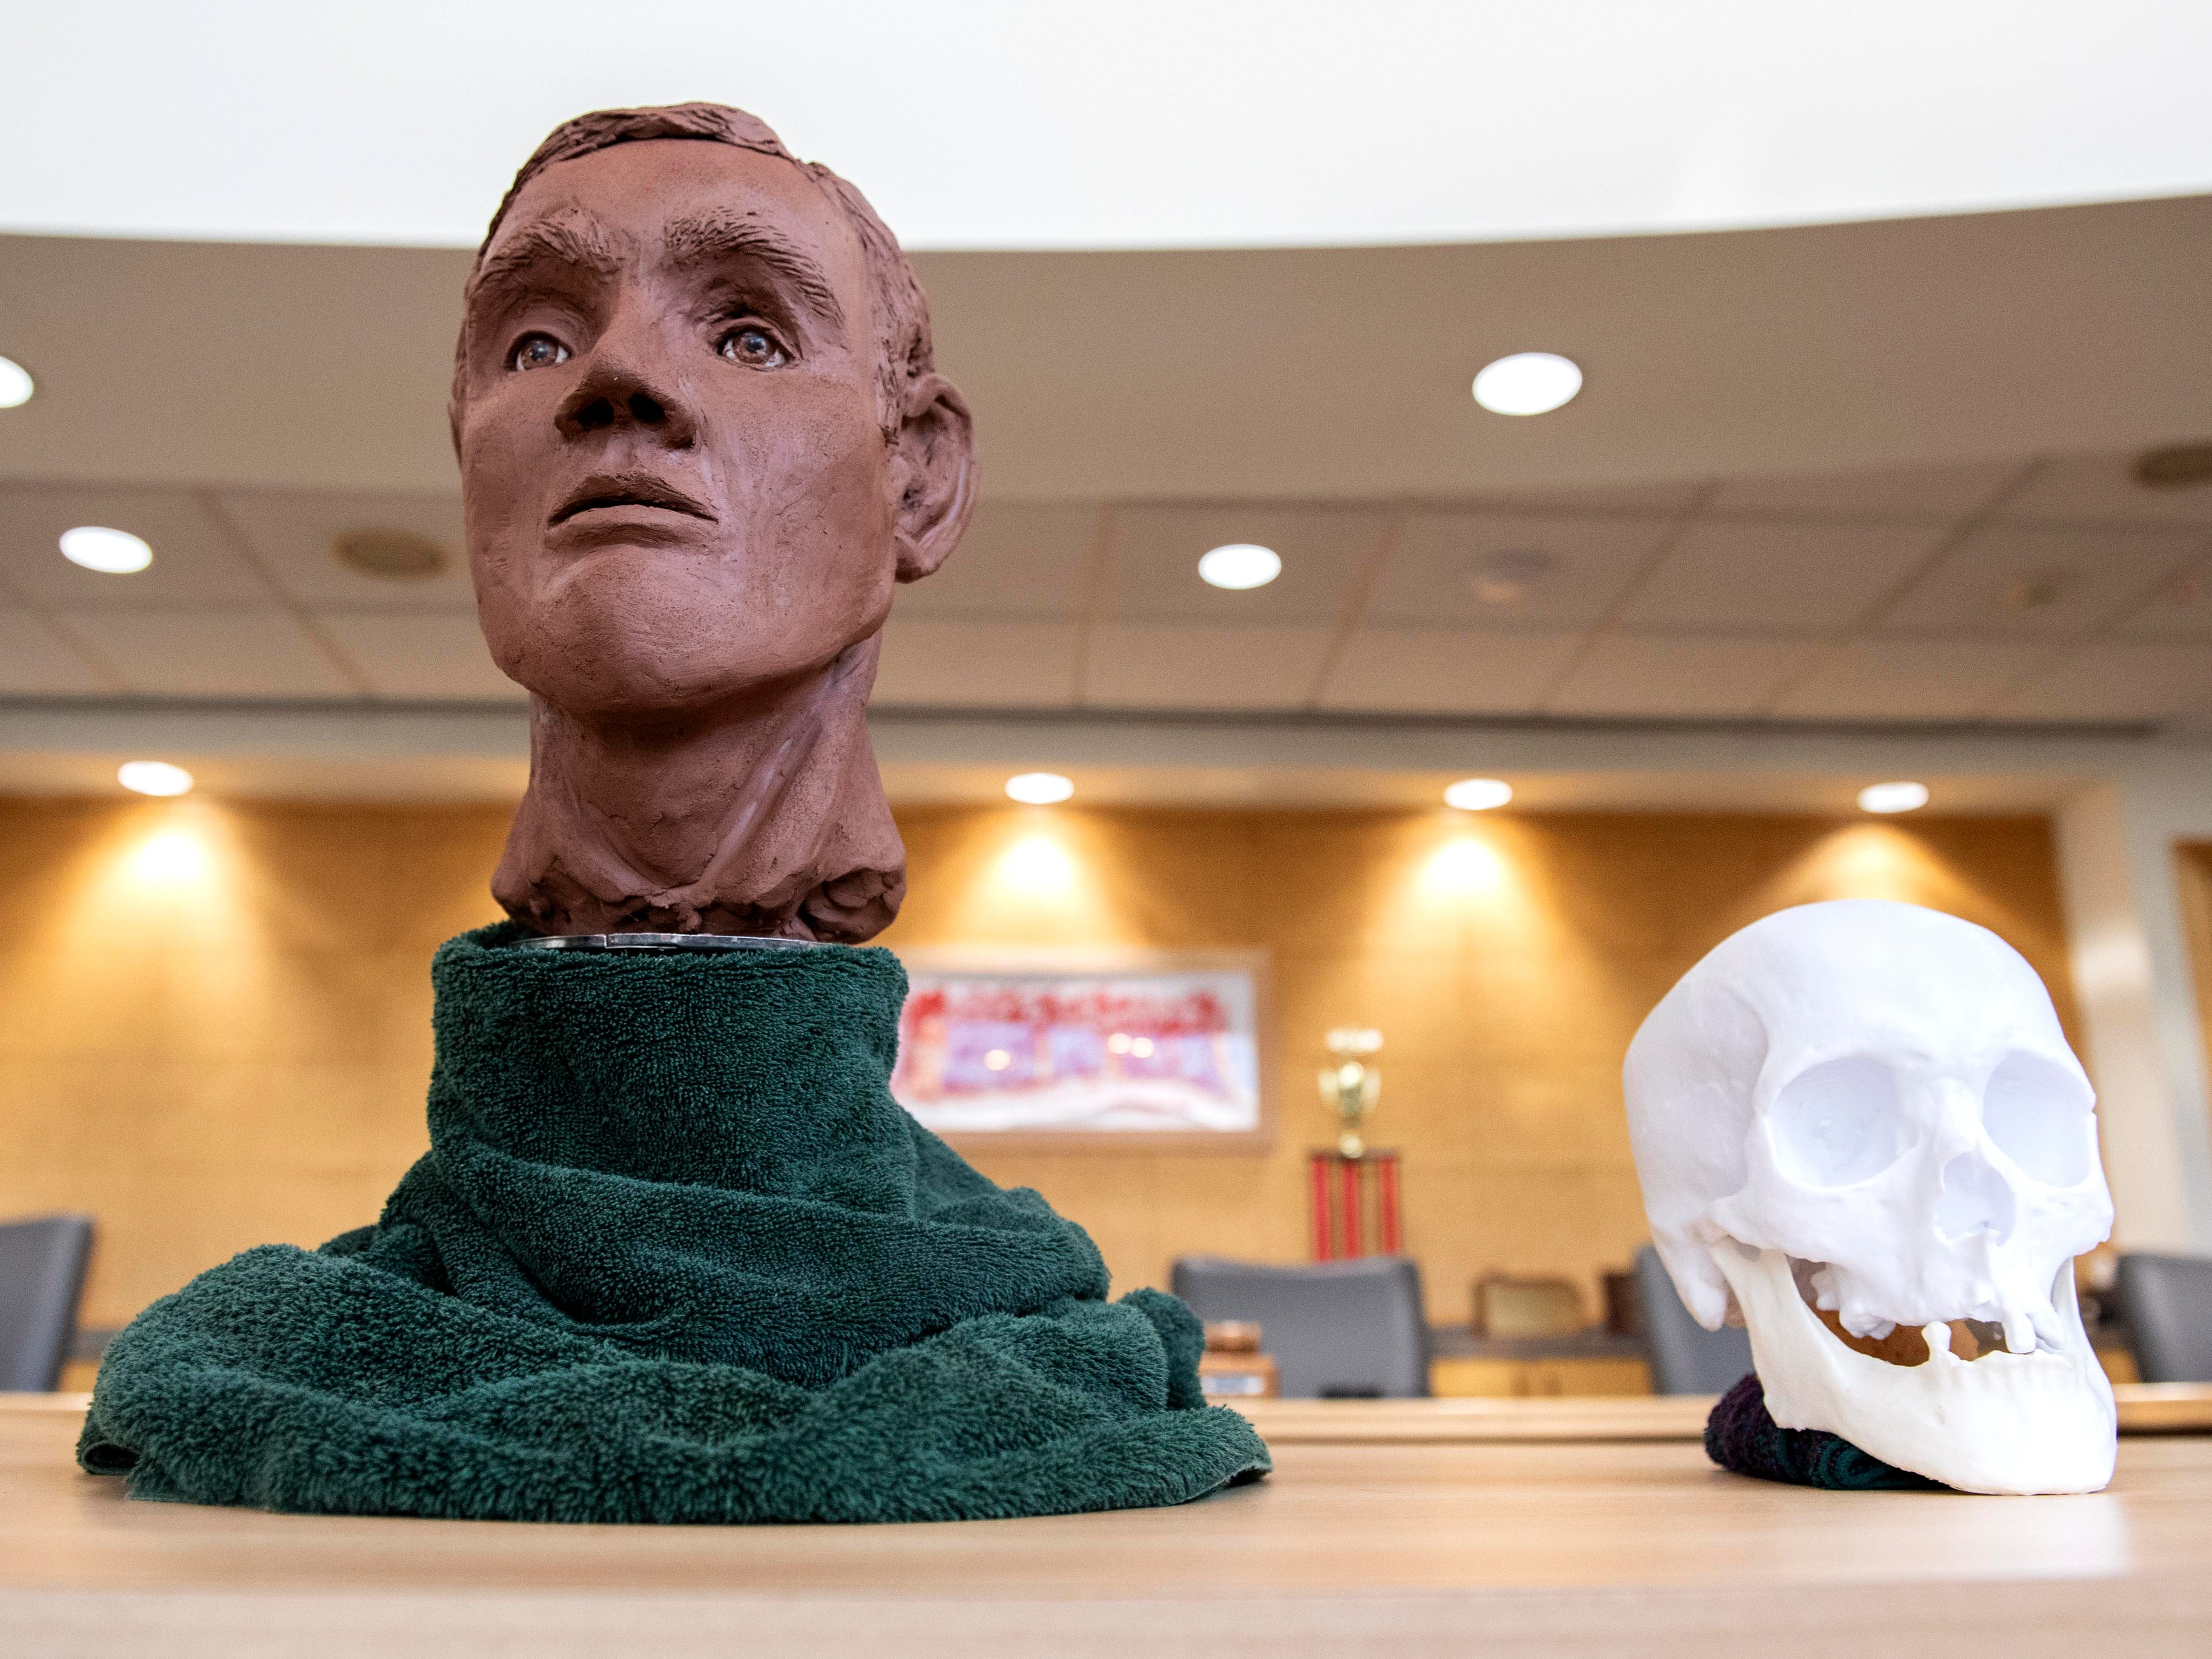 A clay bust, depicting what a cold case victim might have looked like, along with a 3D-printed skull, created by forensic artist Jenny Kenyon, sit in the West Manchester Township building during a news conference. The victim's skeletal remains were found at the intersection of Loucks and Haviland roads in November 2013.